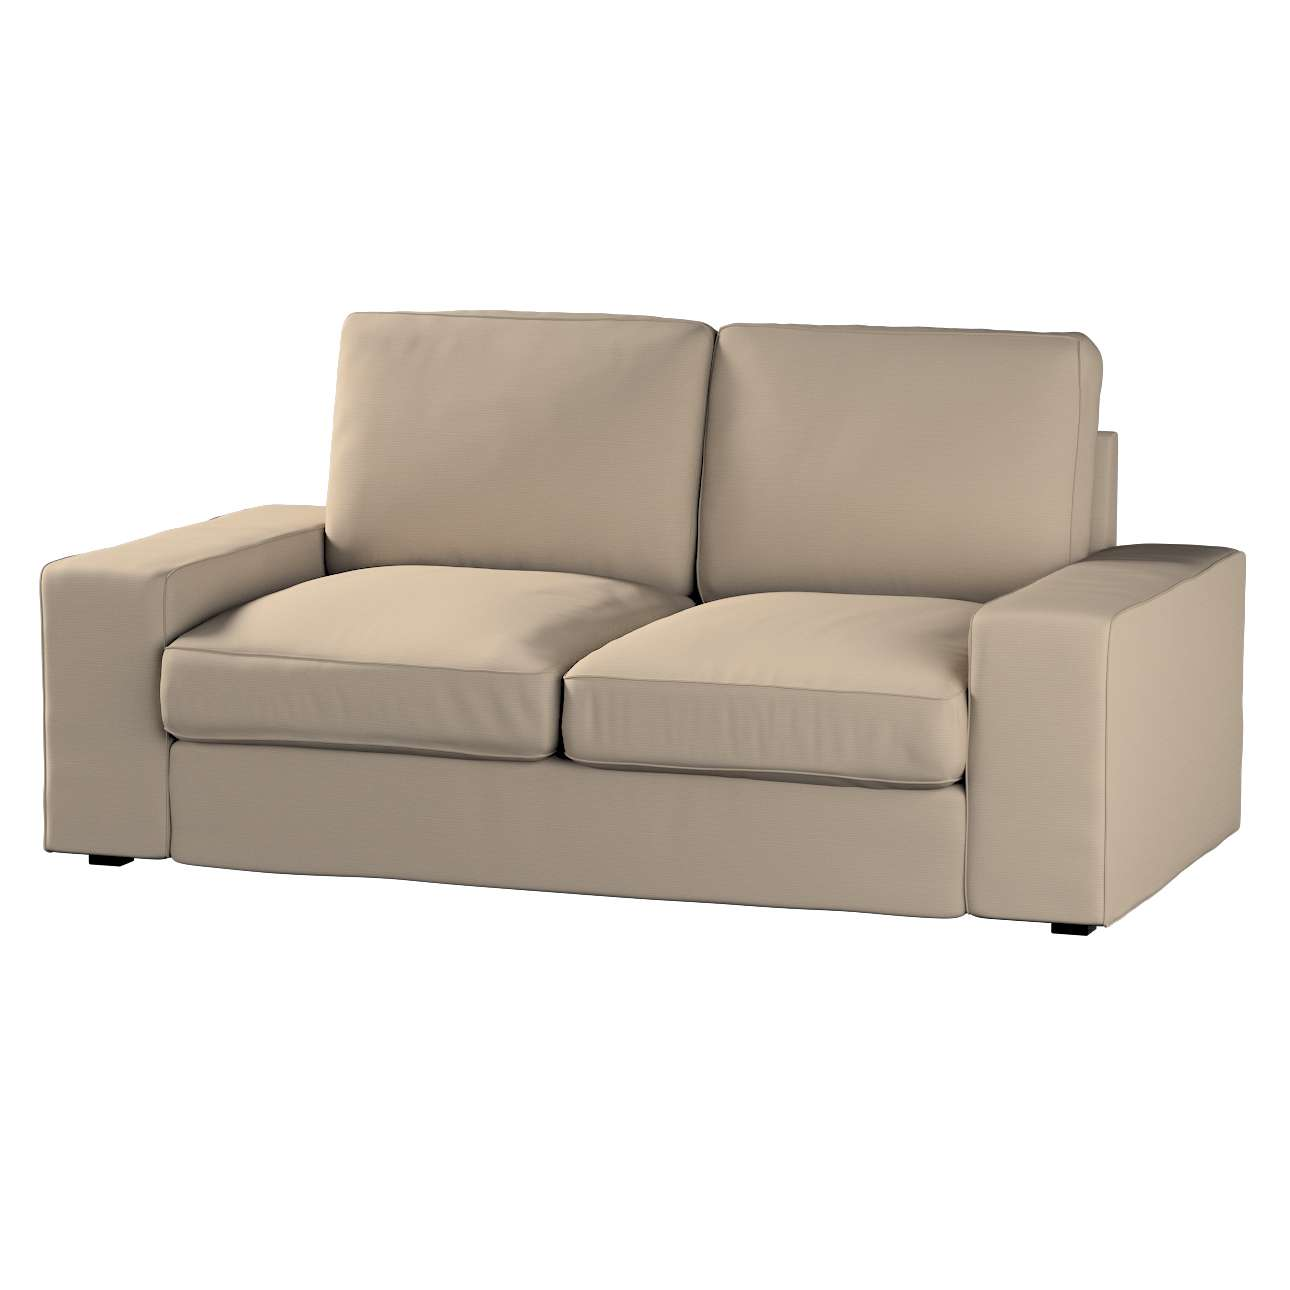 Kivik 2-seater sofa cover